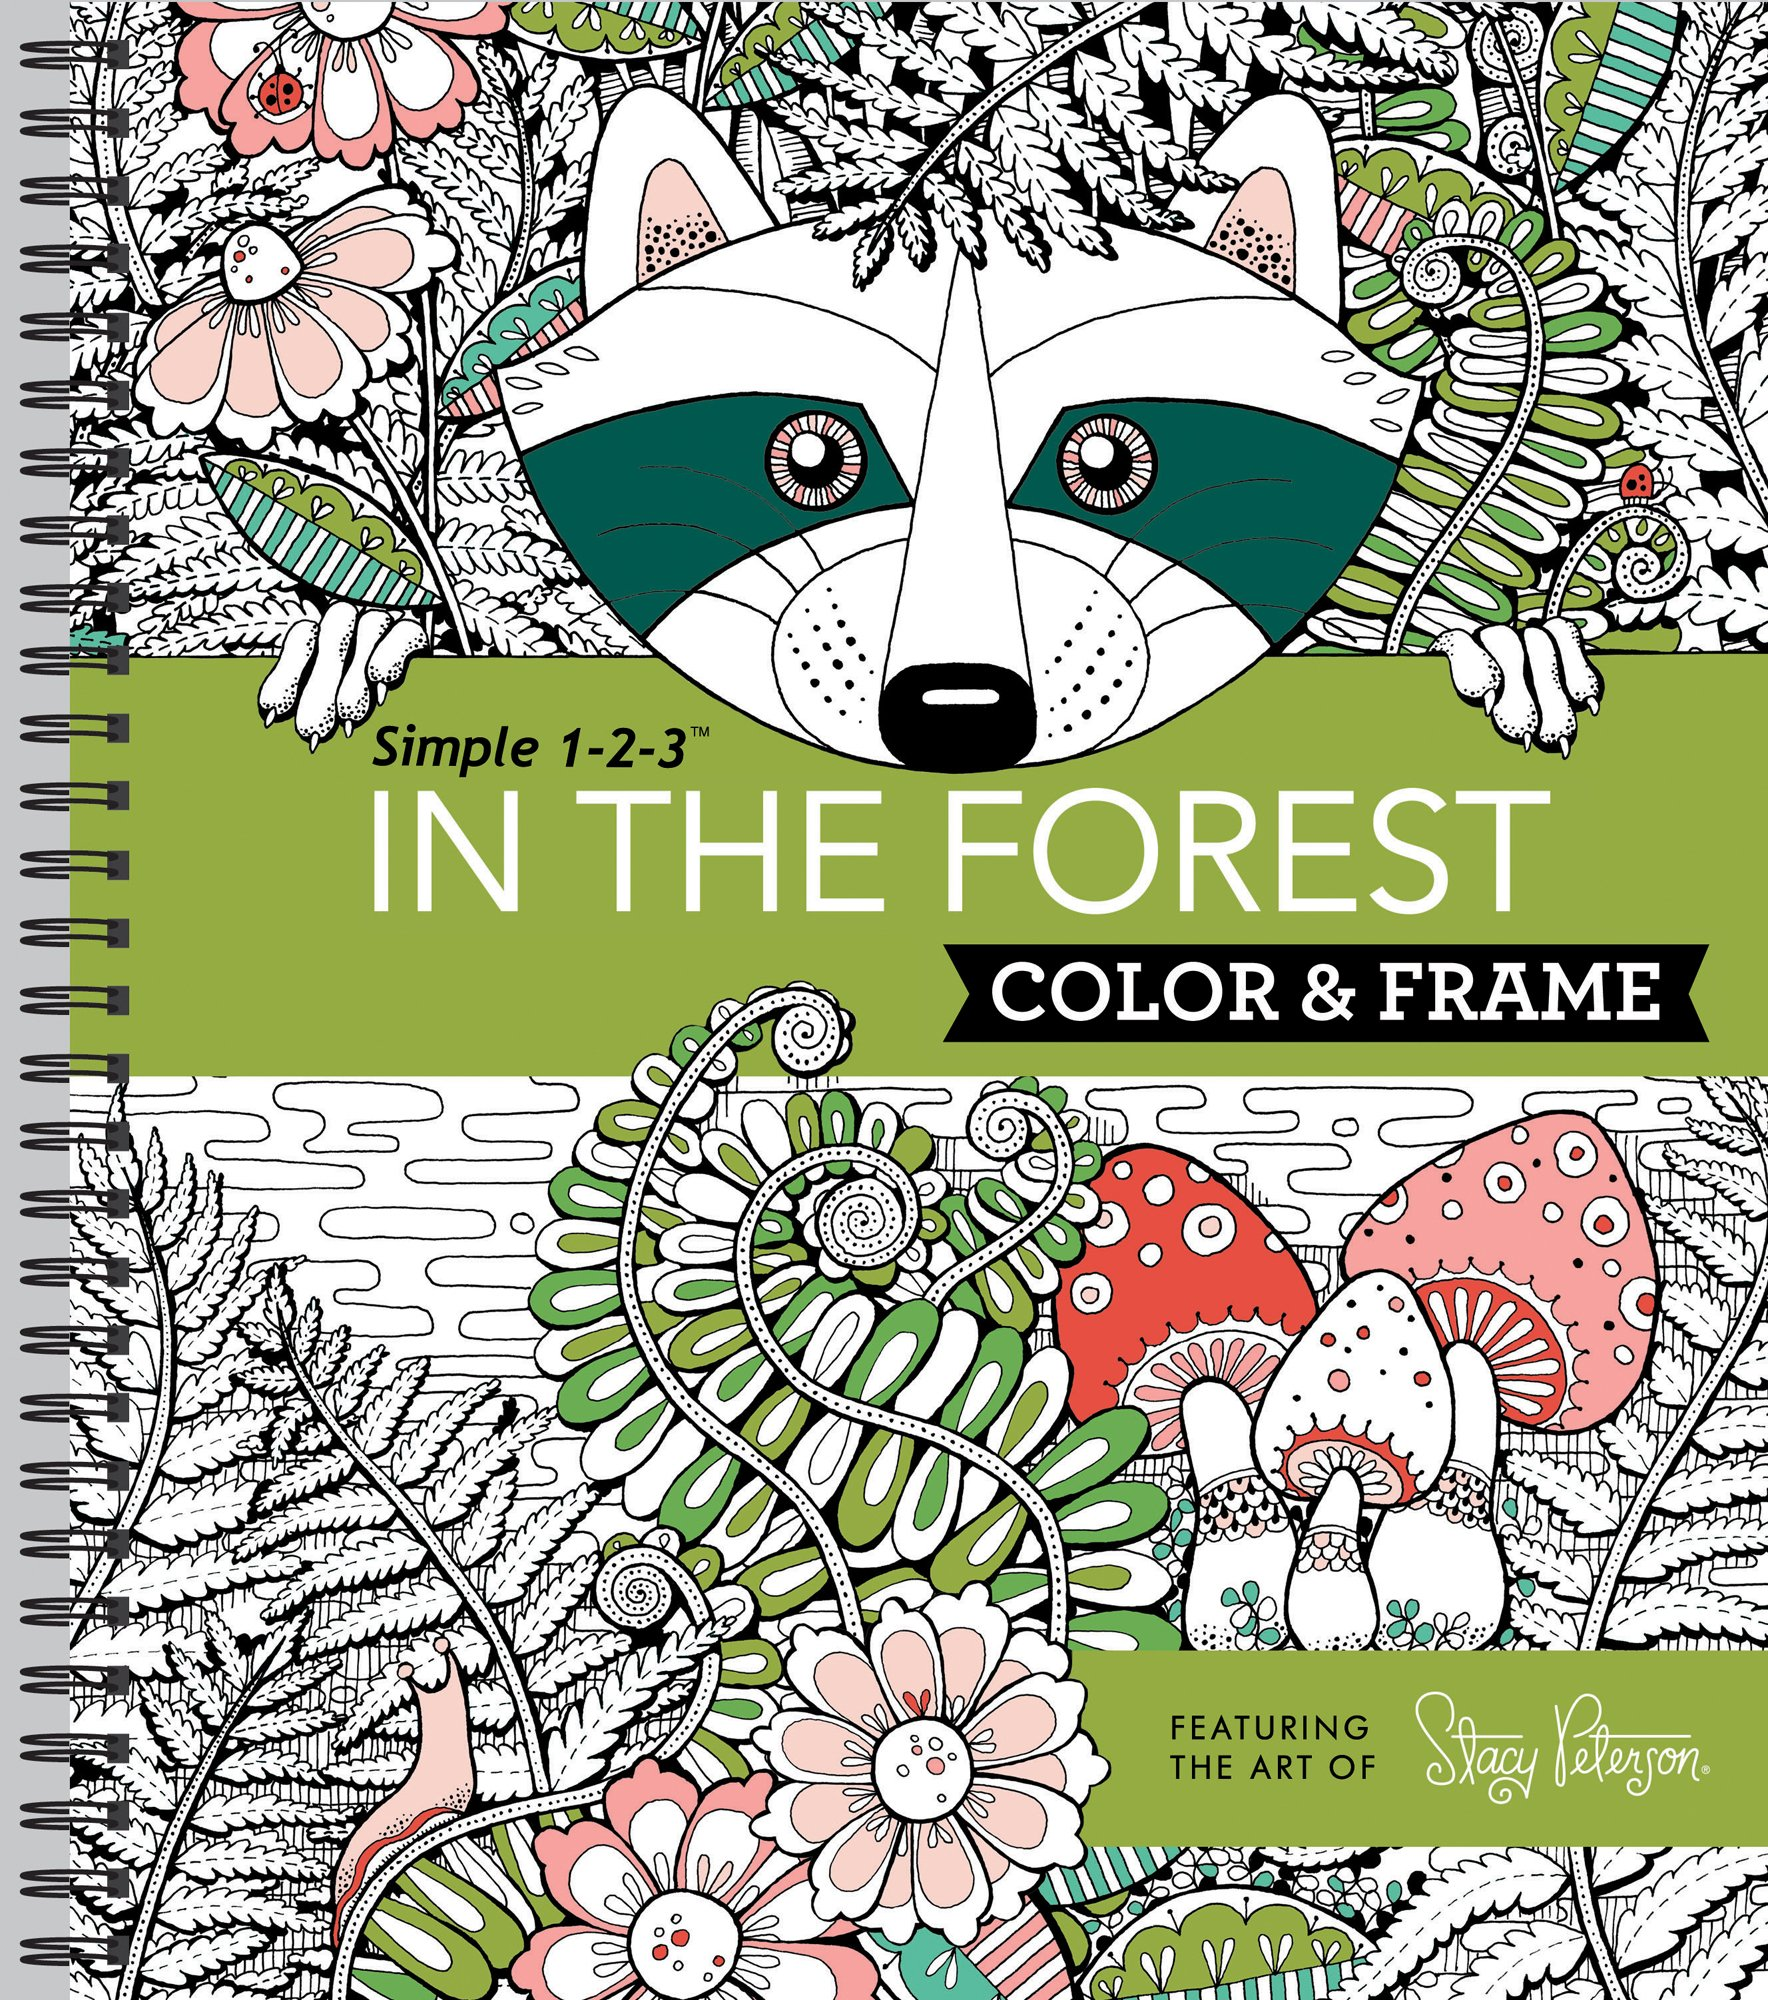 Color & Frame – In the Forest (Adult Coloring Book)